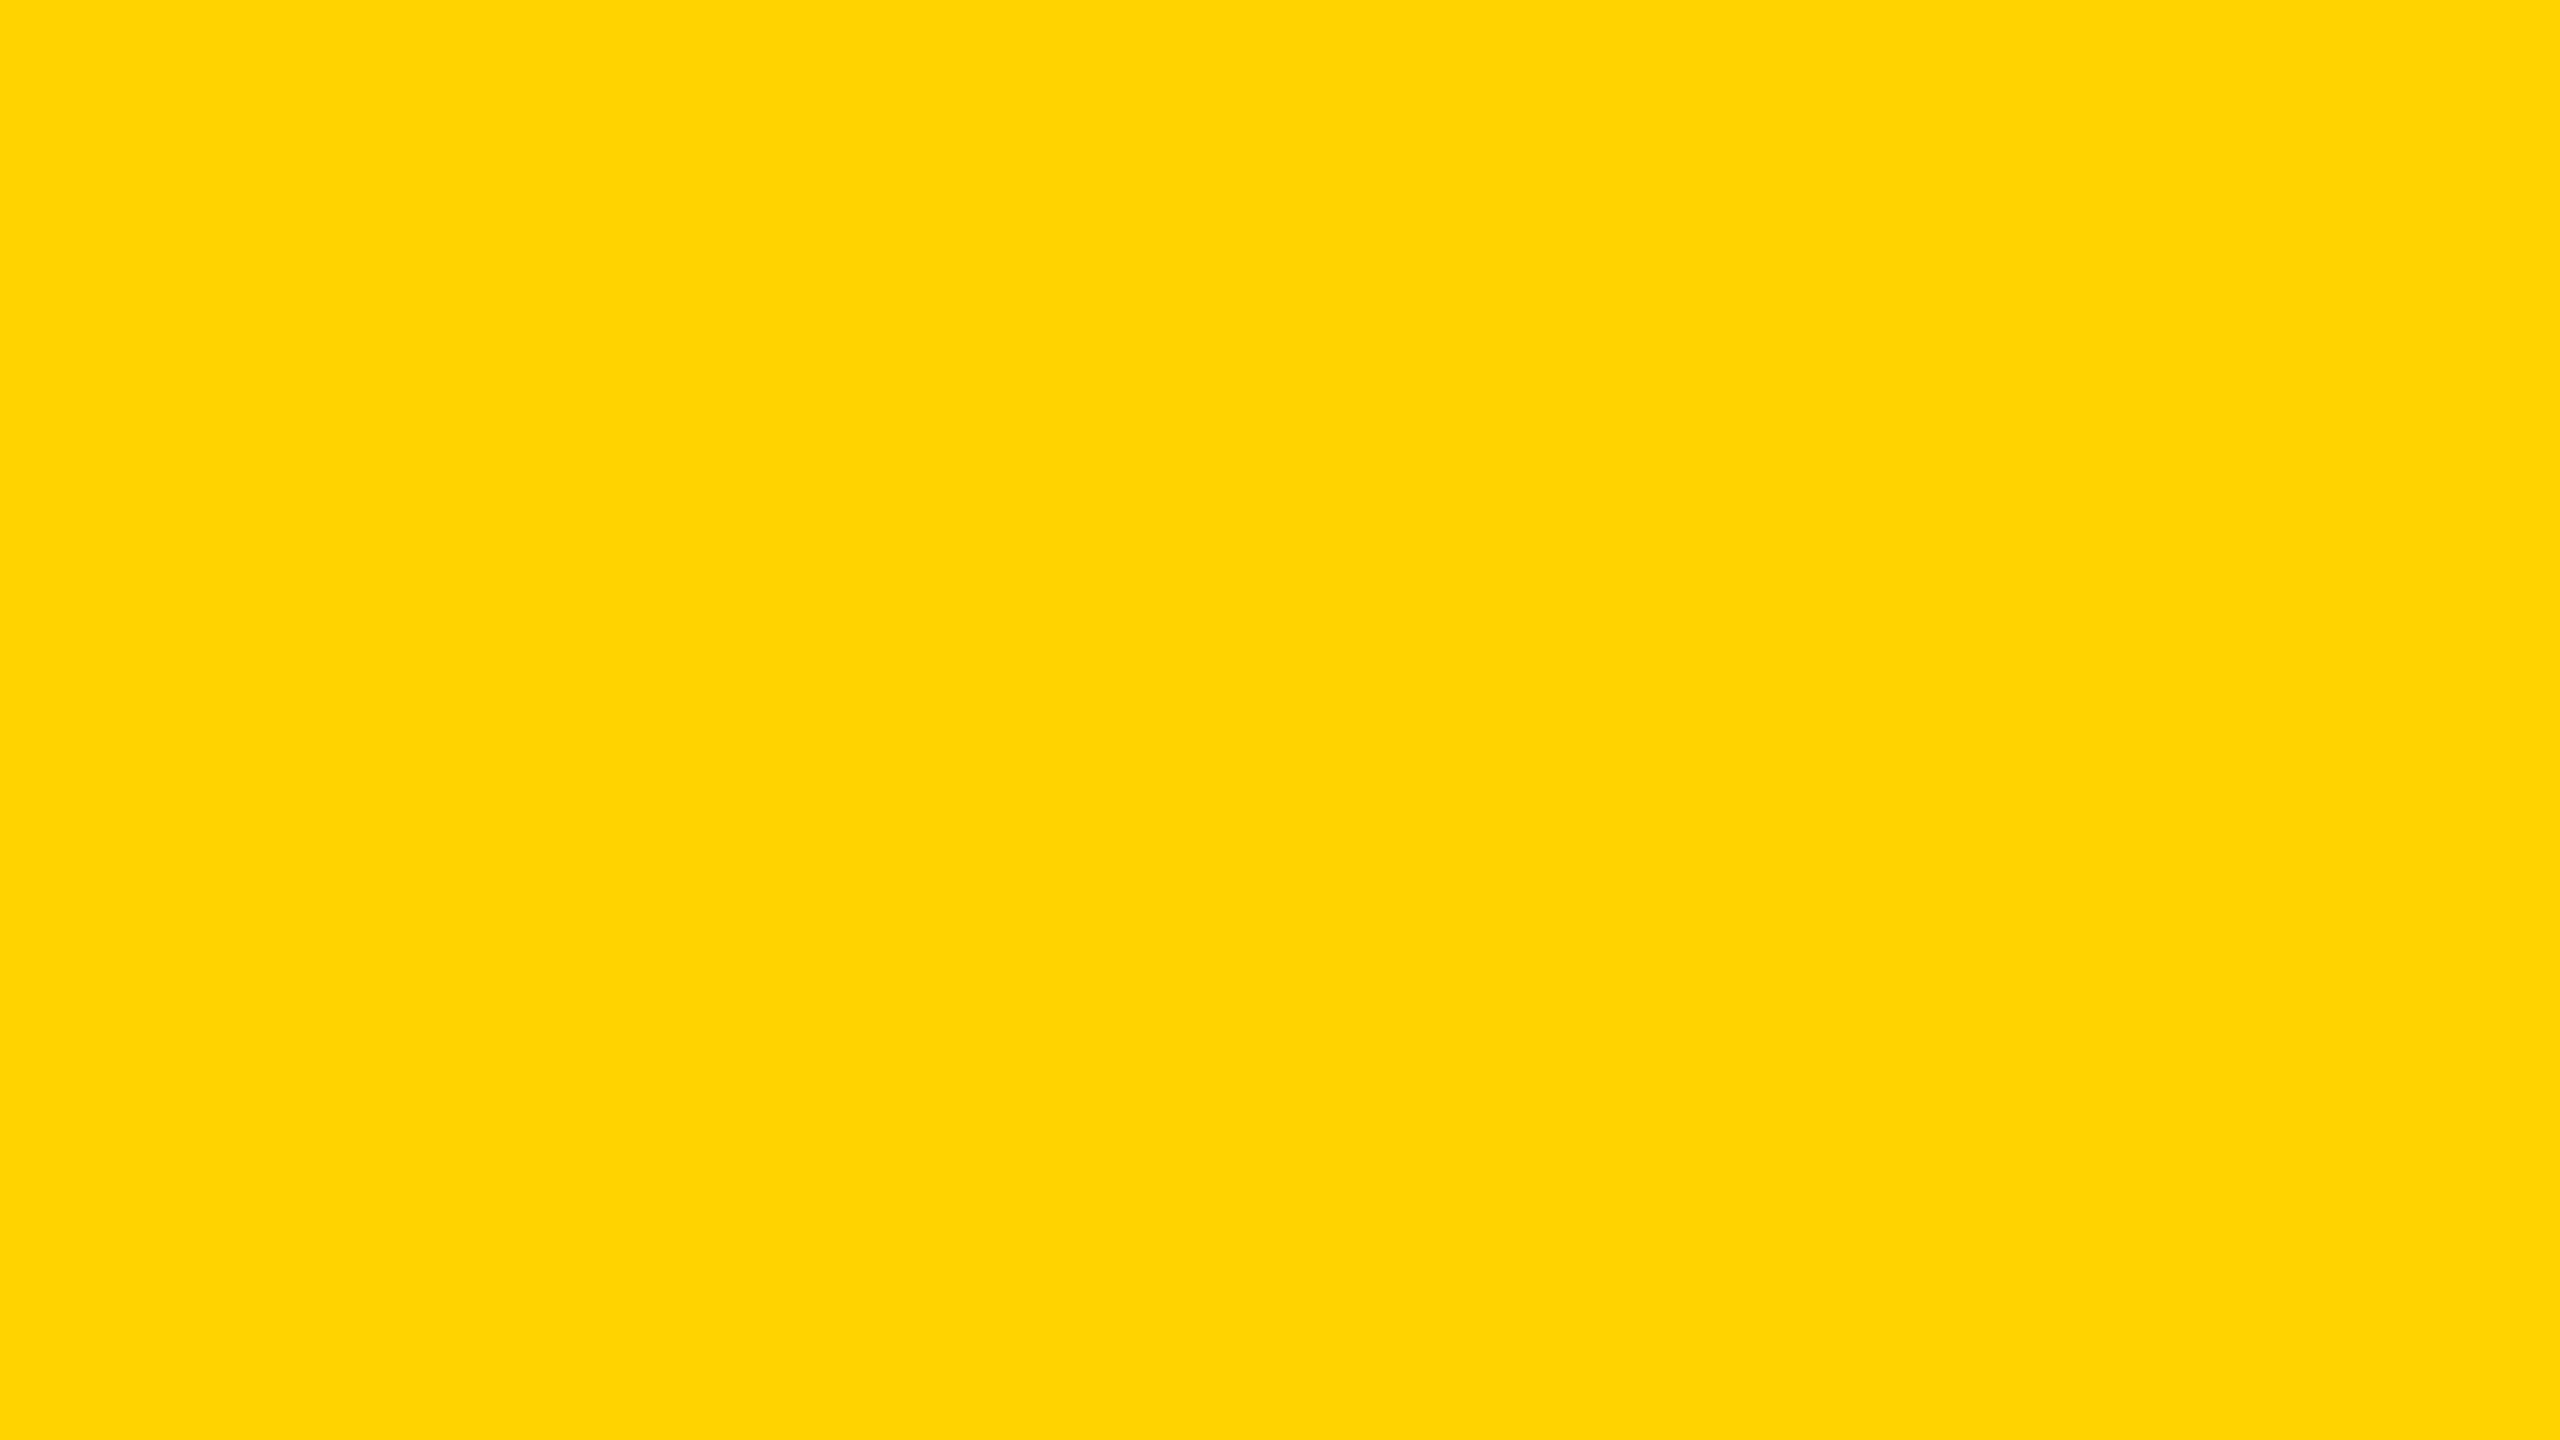 Yellow Background Solid